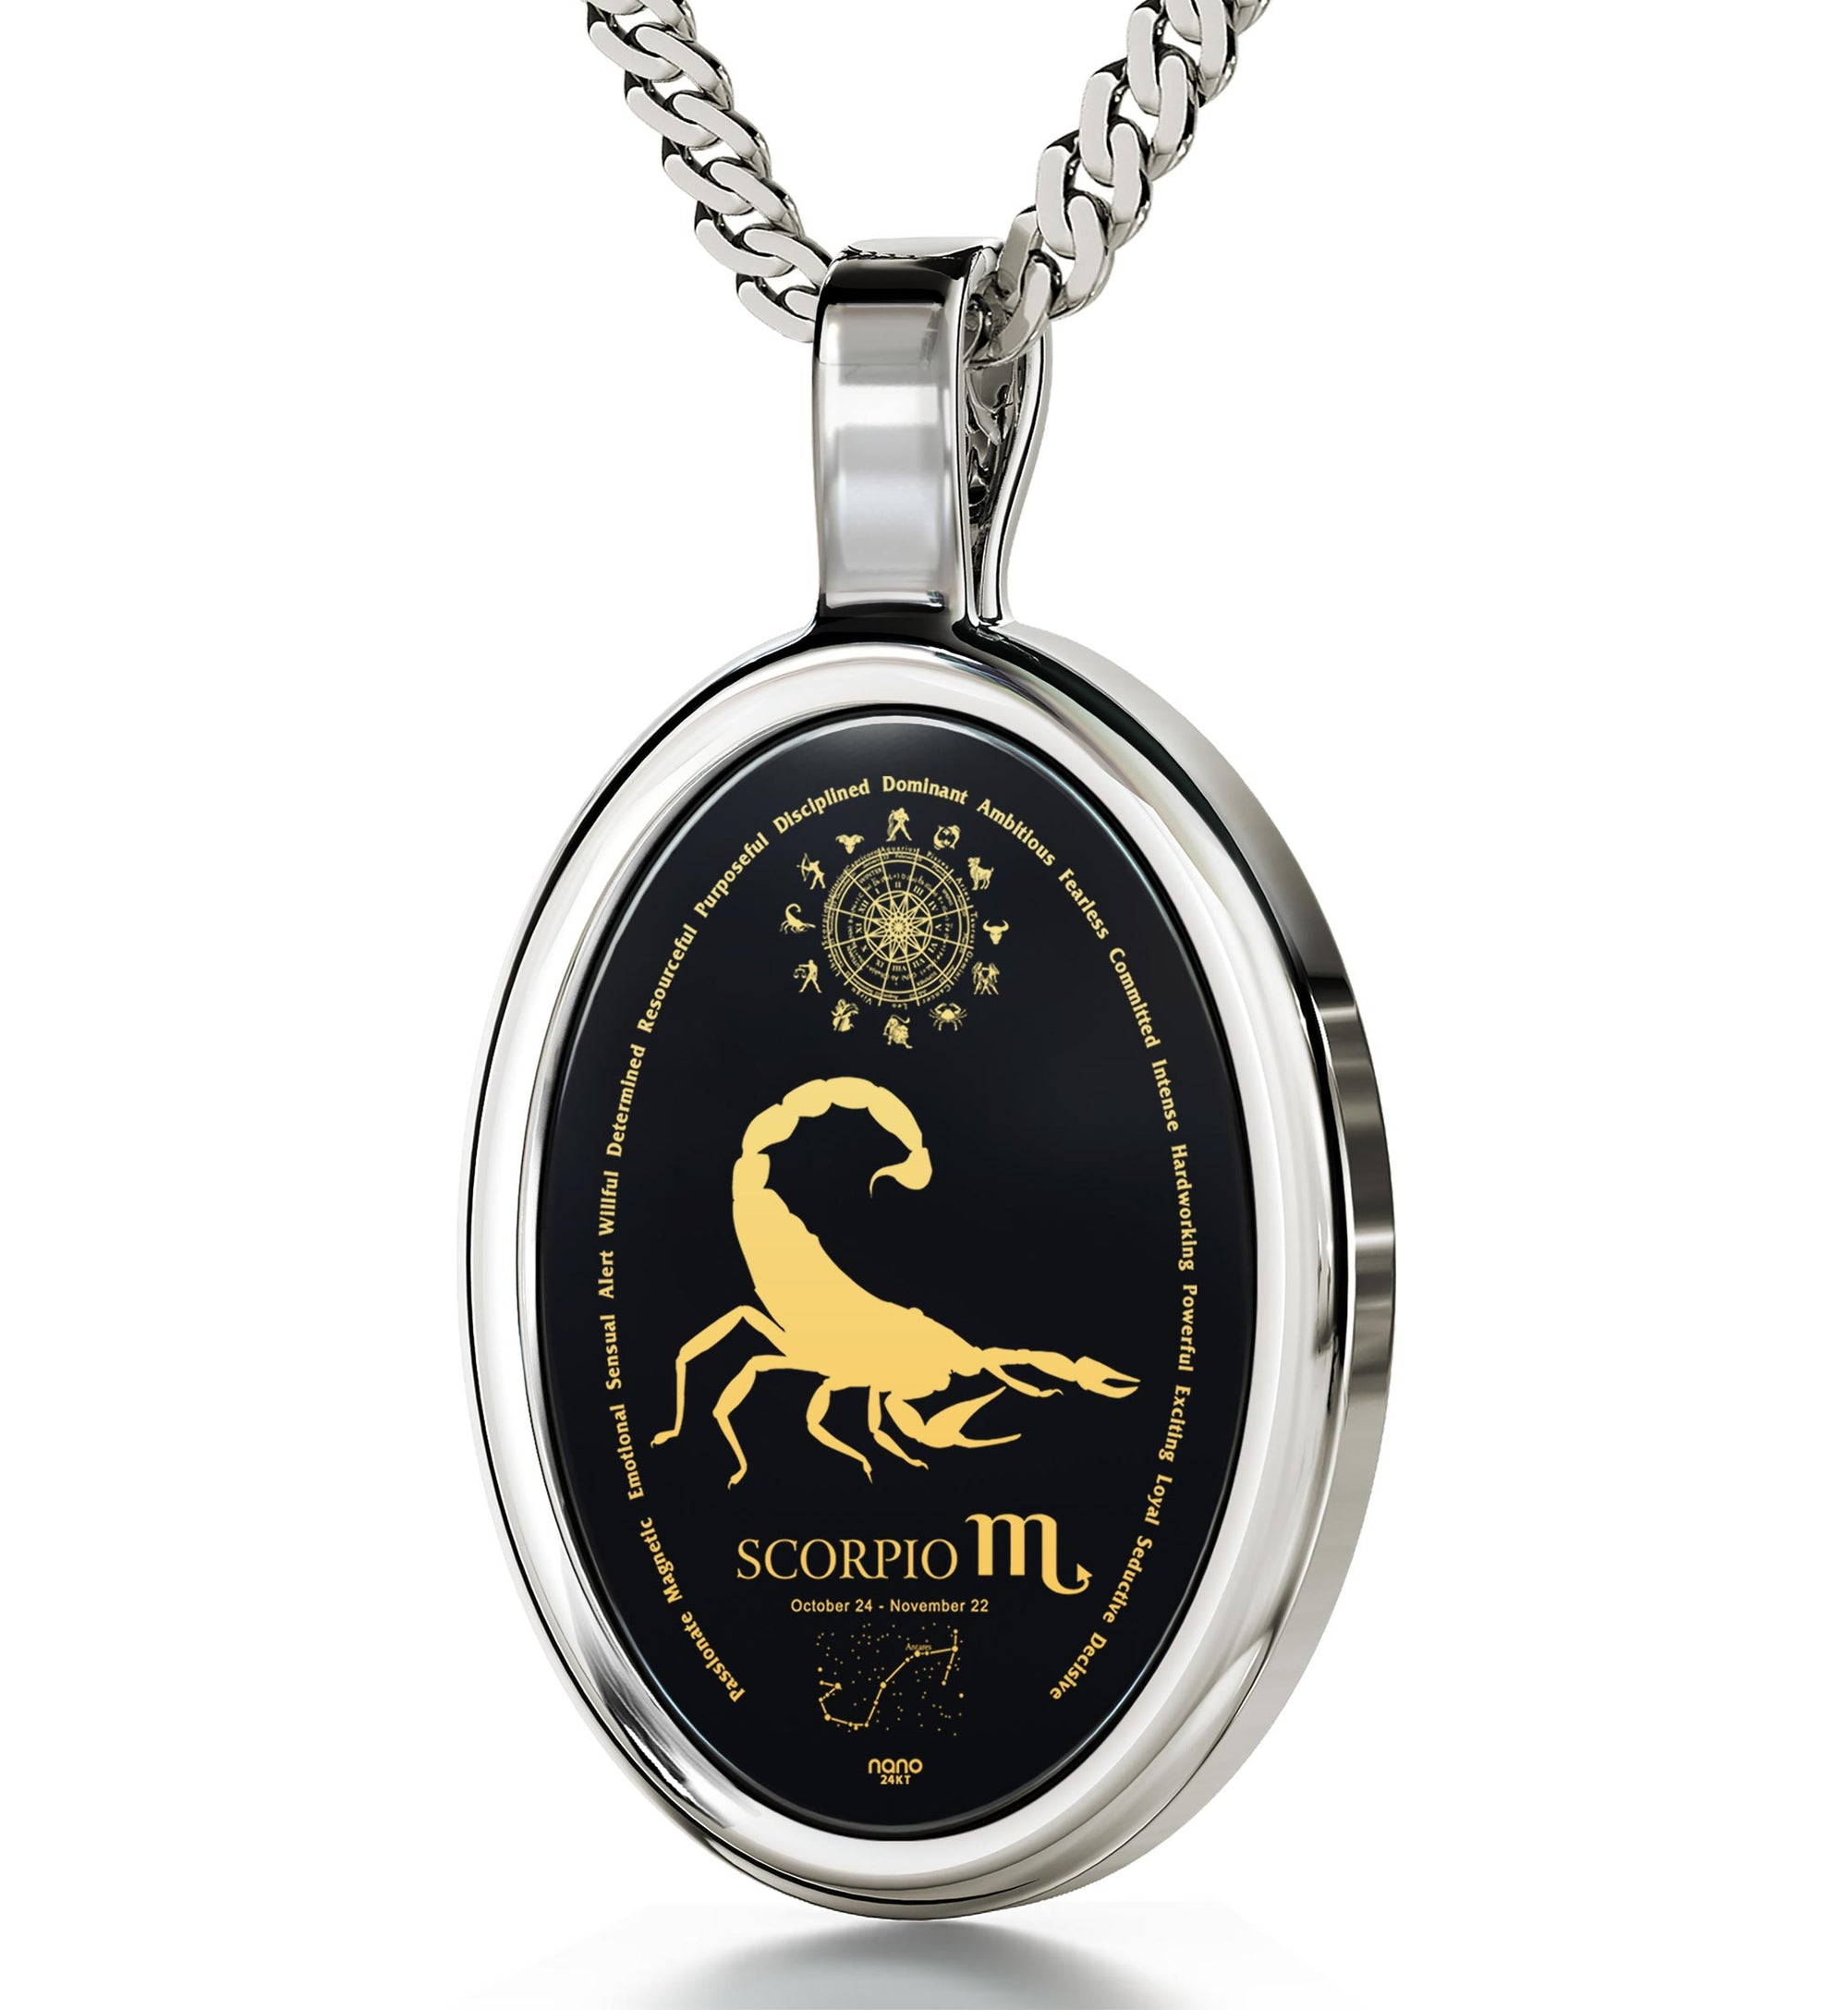 Scorpio Necklace Zodiac Pendant 24k Gold Inscribed on Onyx Stone - NanoStyle Jewelry